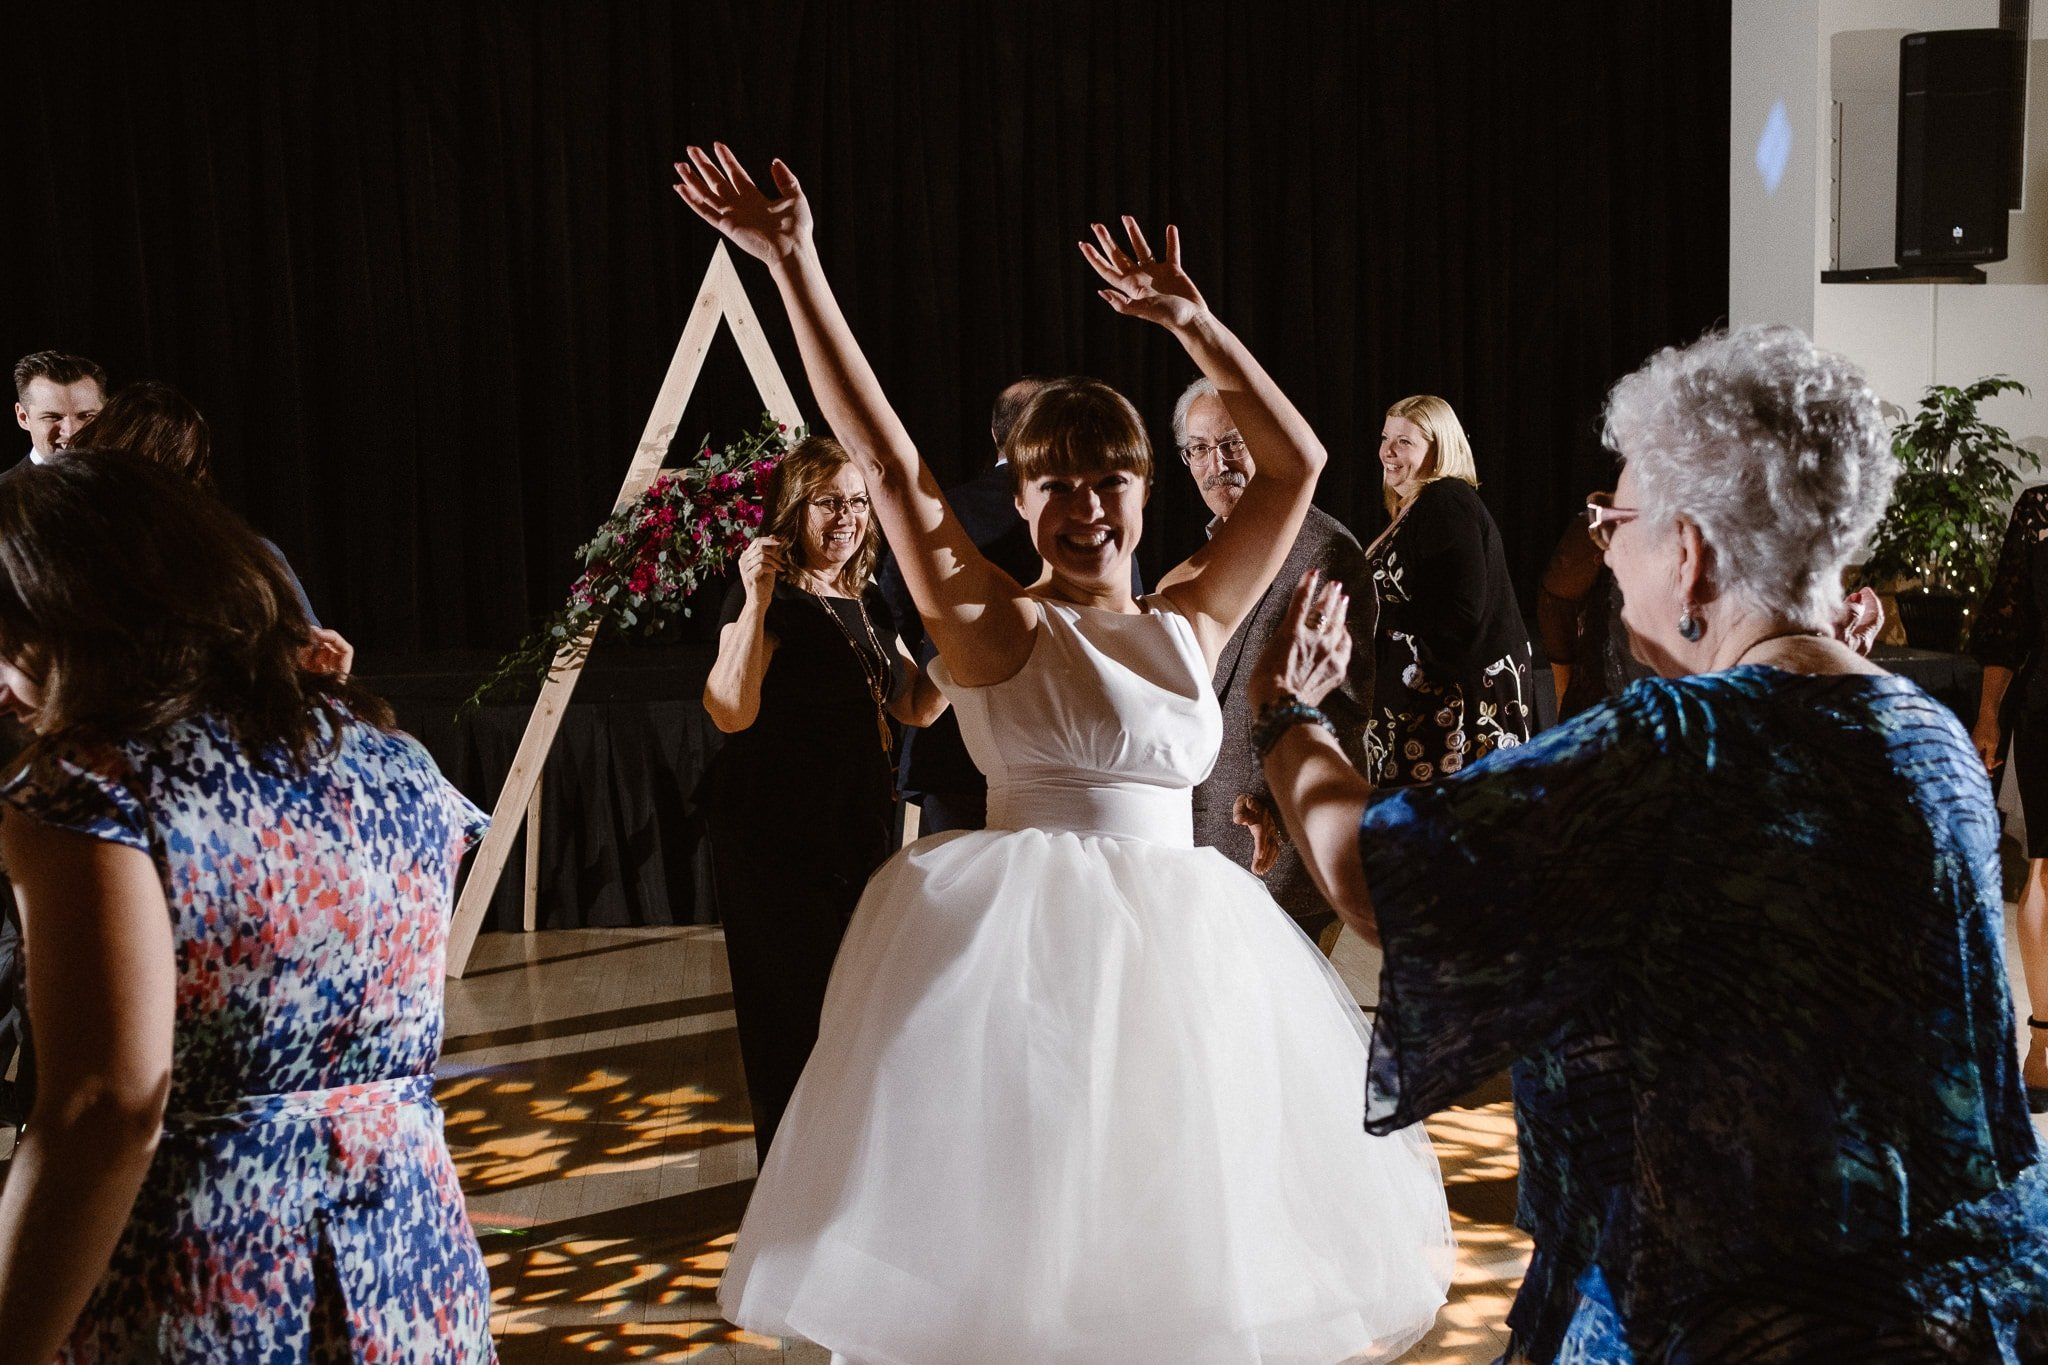 Silverthorne Pavilion wedding photography, Colorado wedding photographer, wedding reception dance party